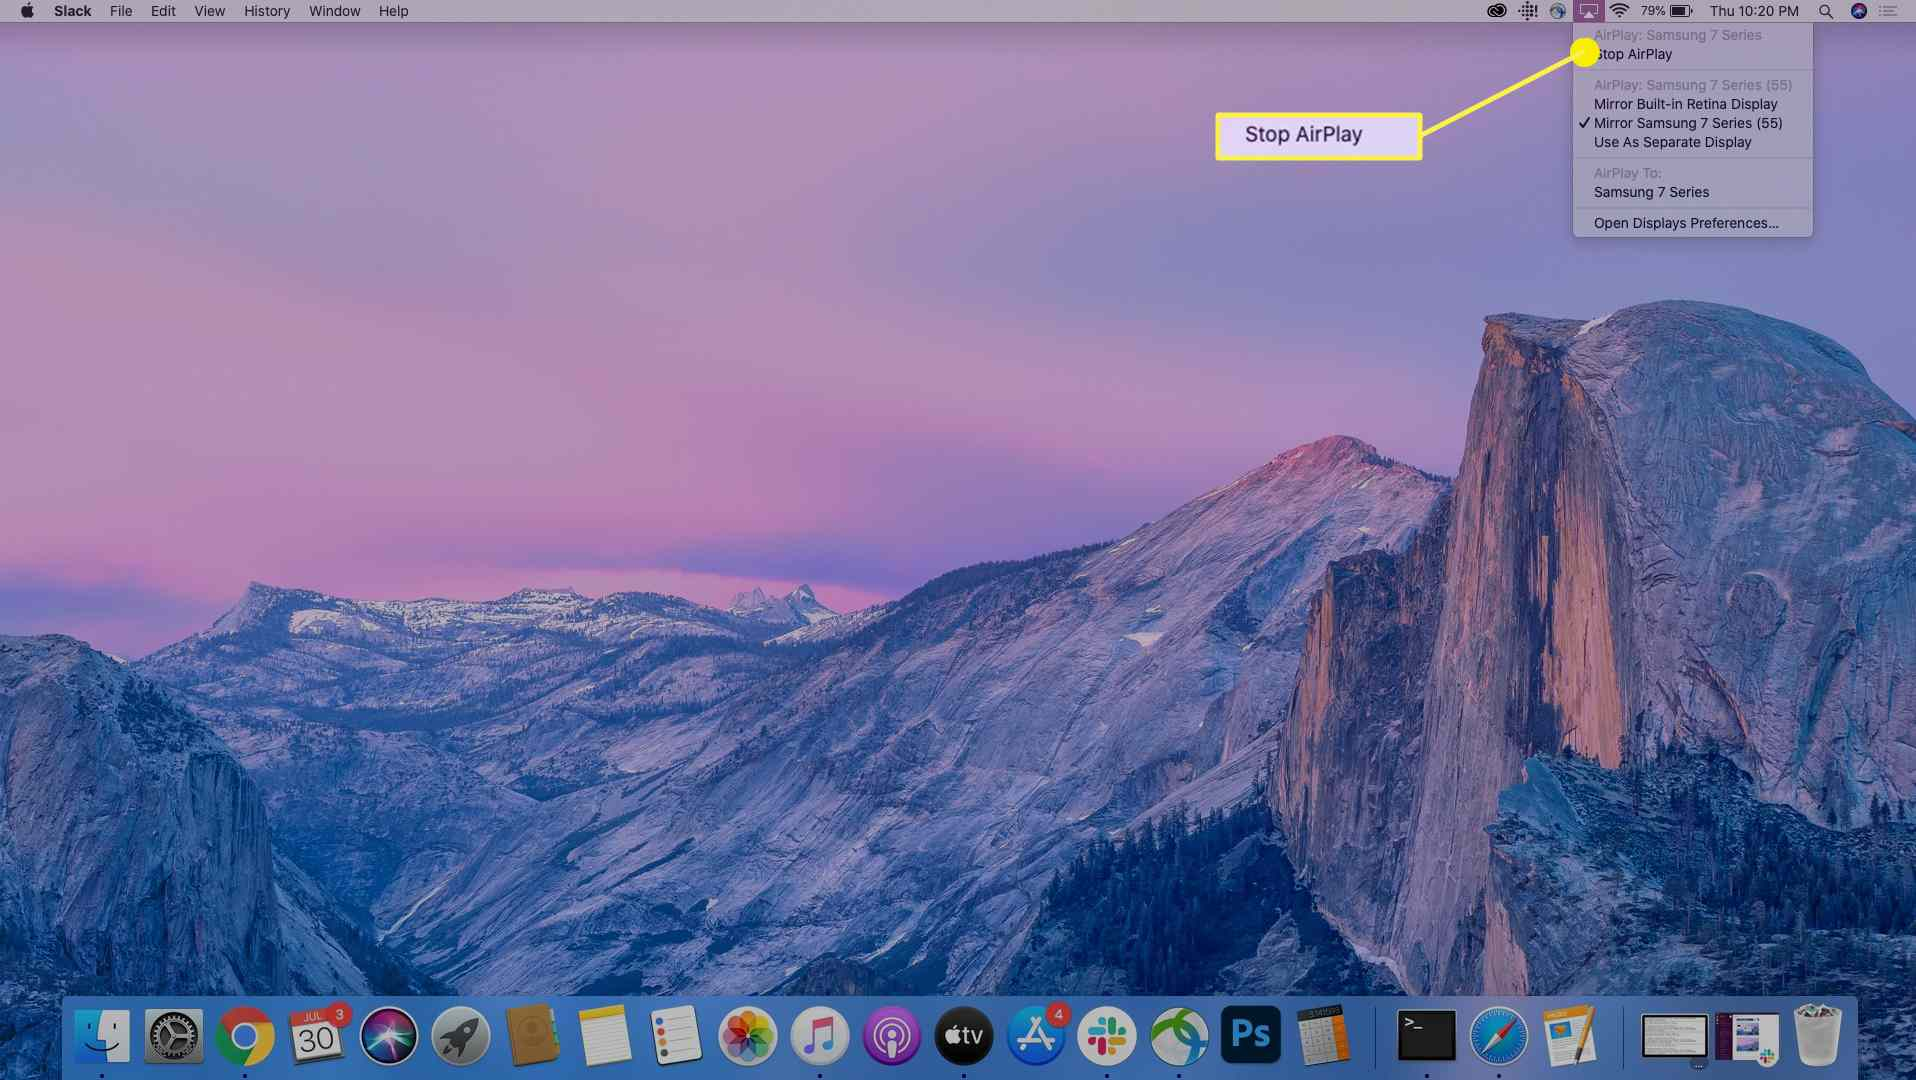 The Stop AirPlay option on a MacBook Pro.